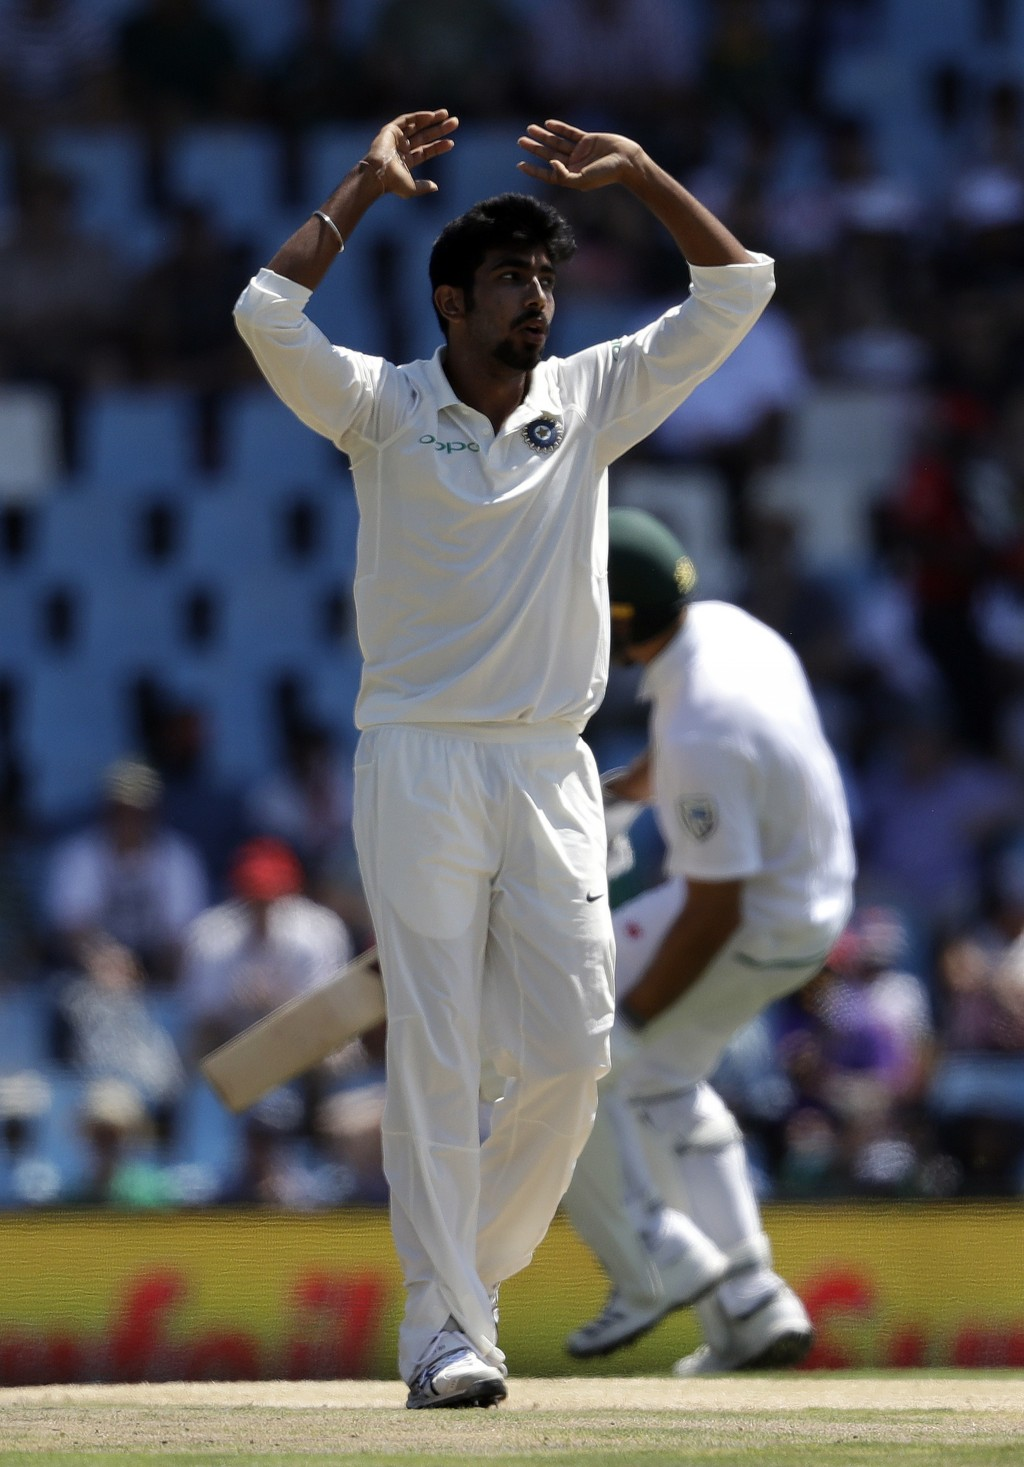 India's bowler Jasprit Bumrah, reacts after his delivery against South Africa's batsman Dean Elgar, during the first day of the second cricket test ma